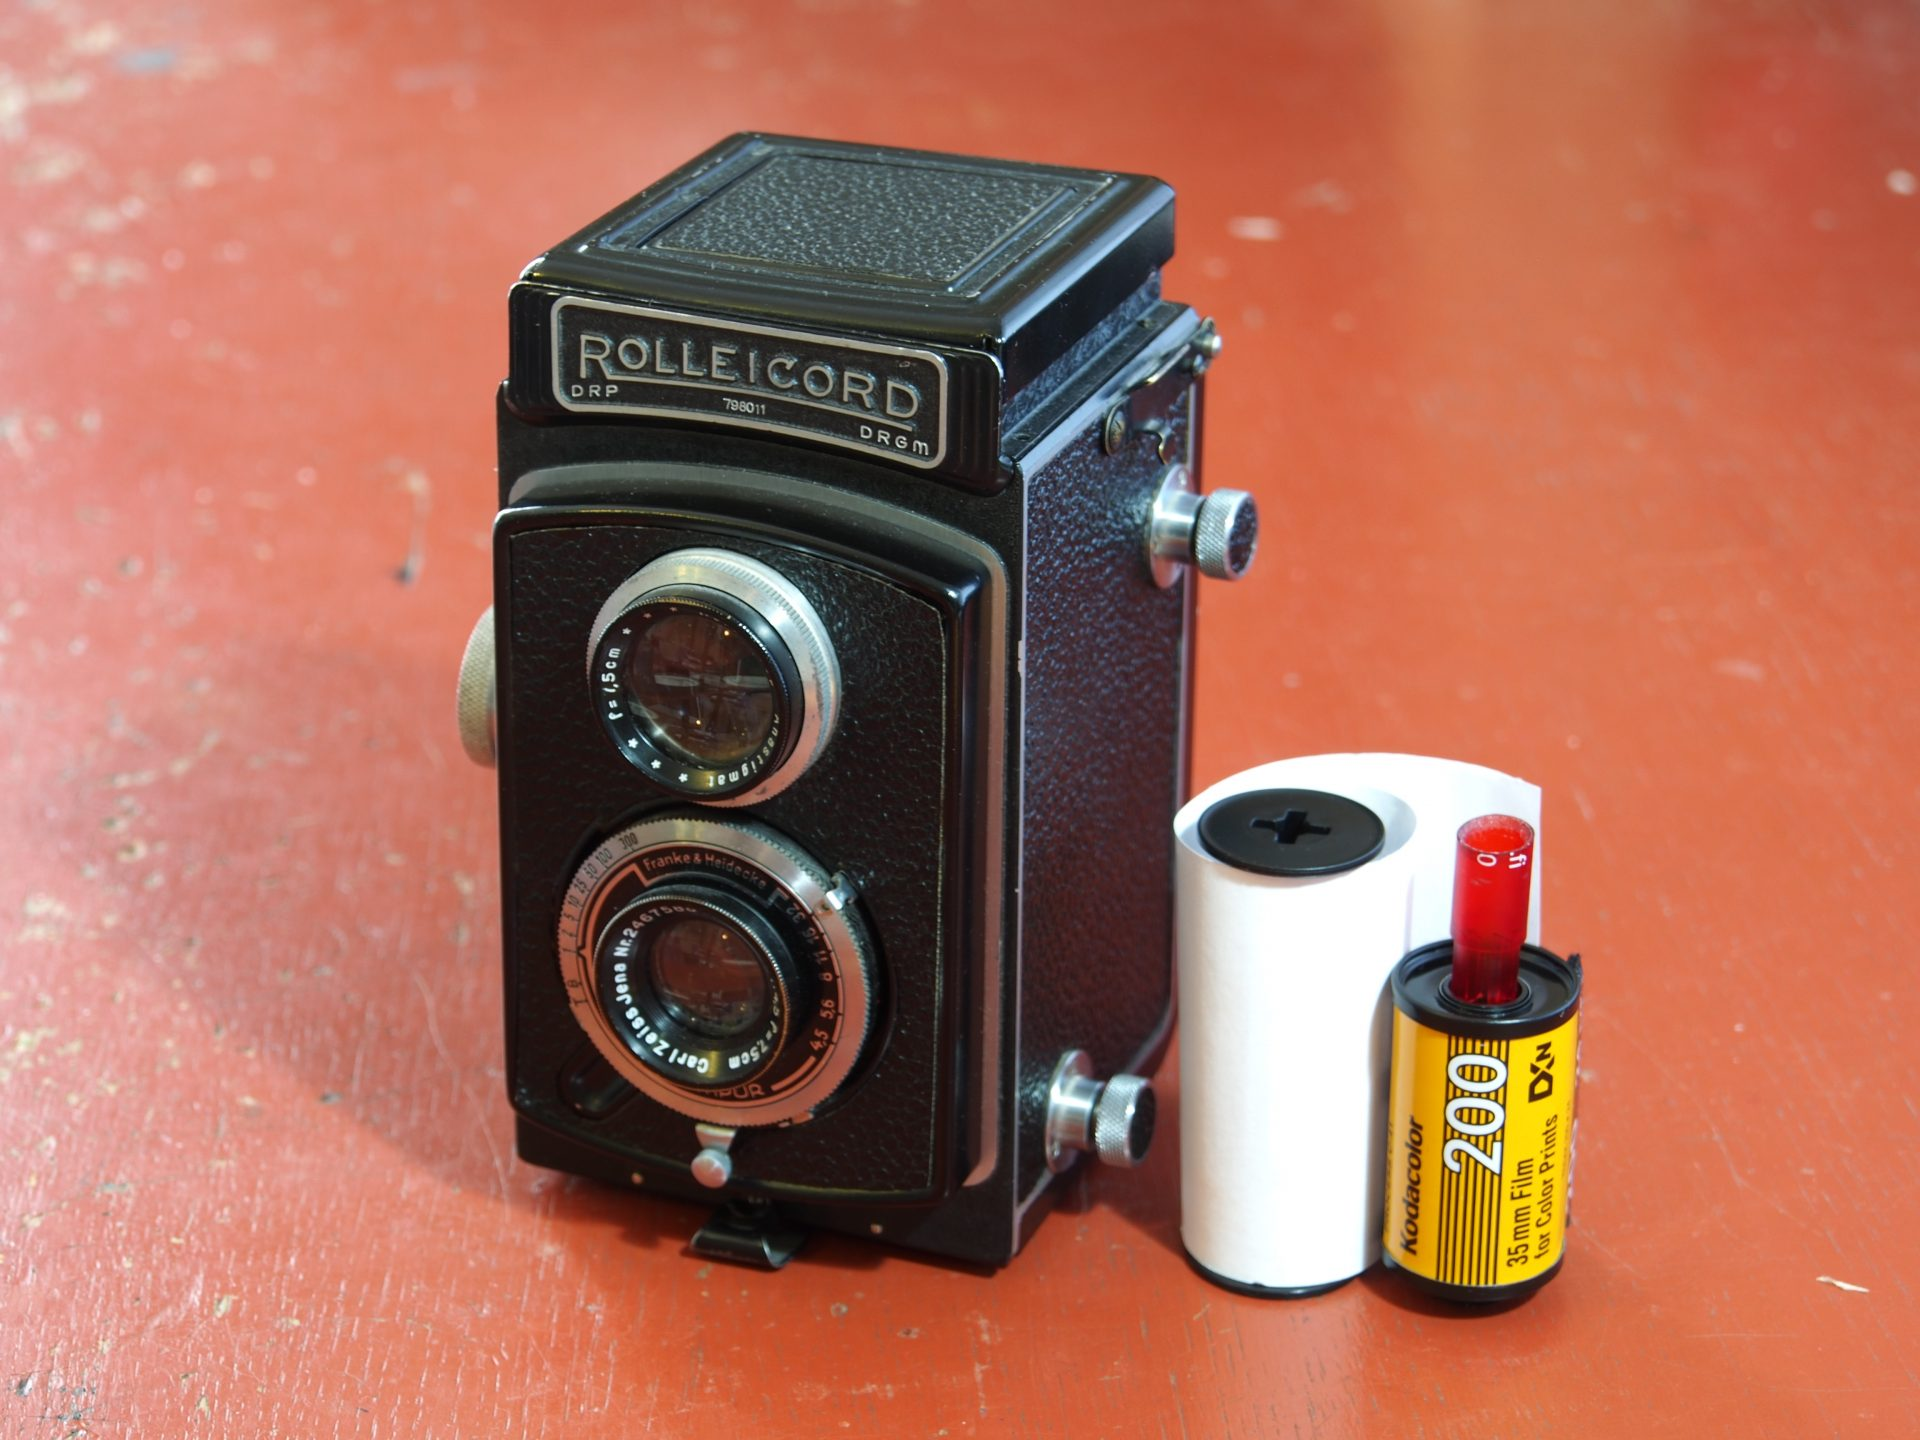 Rolleicord with 35mm film fitted to it